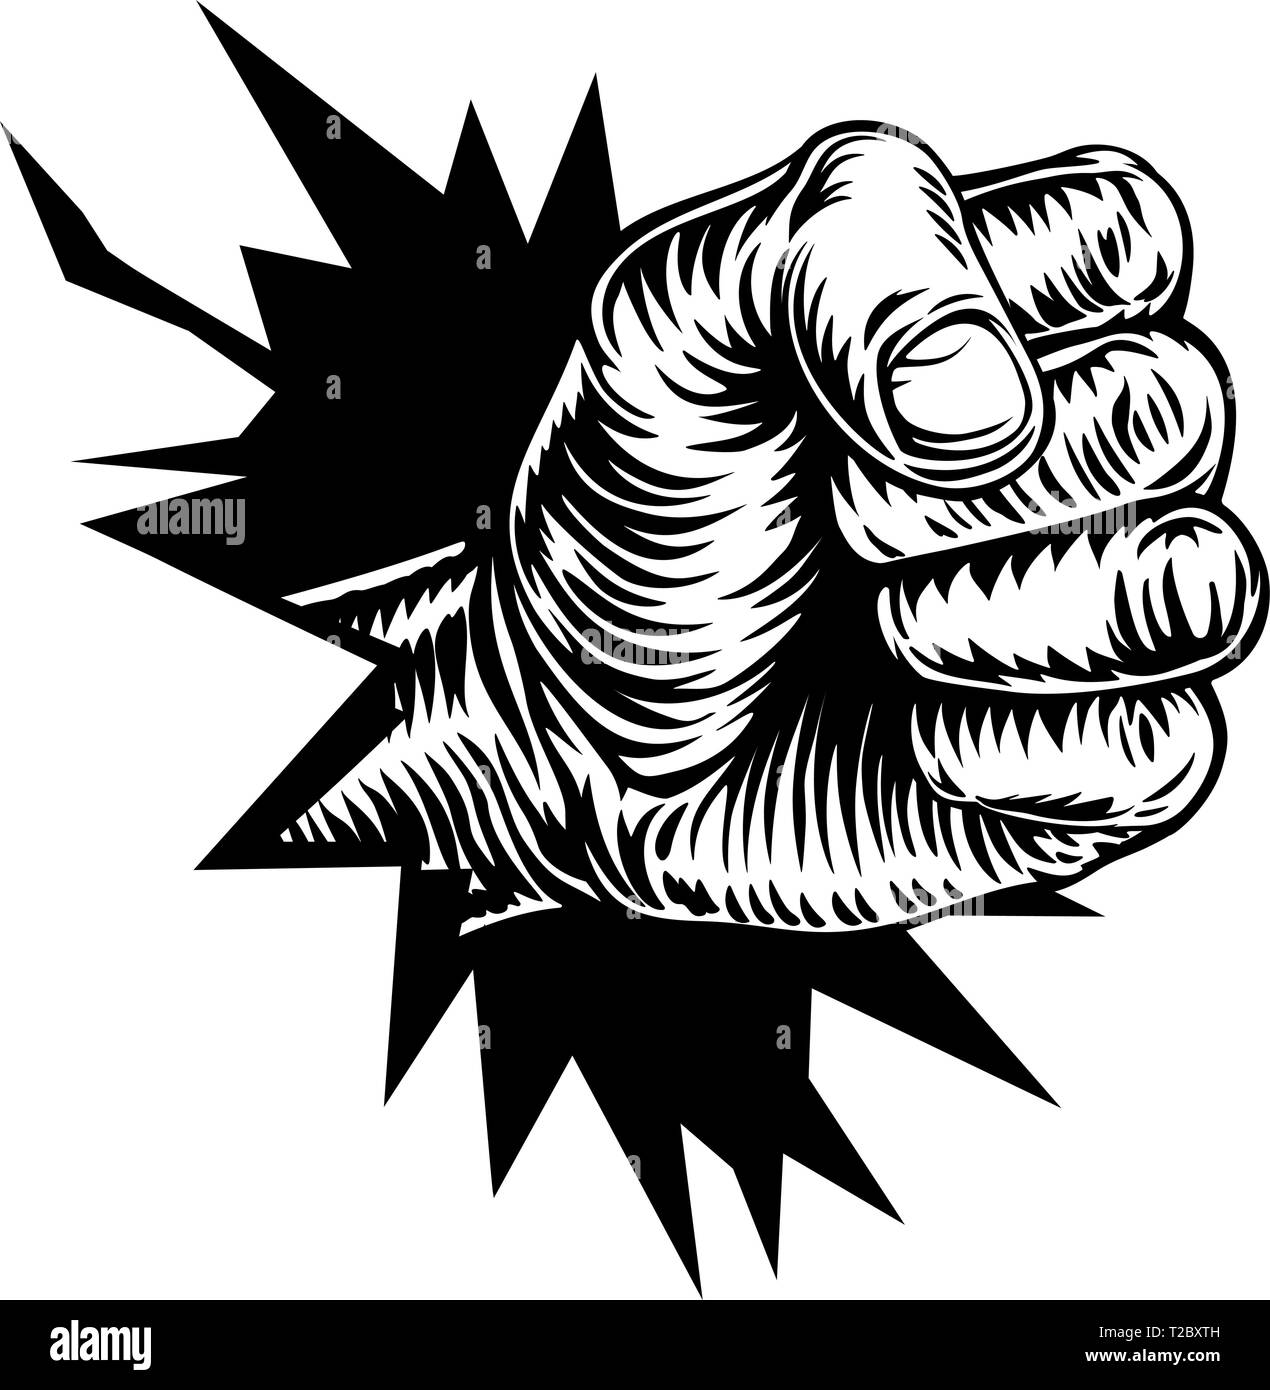 Fist Hand Breaking Background or Wall - Stock Vector